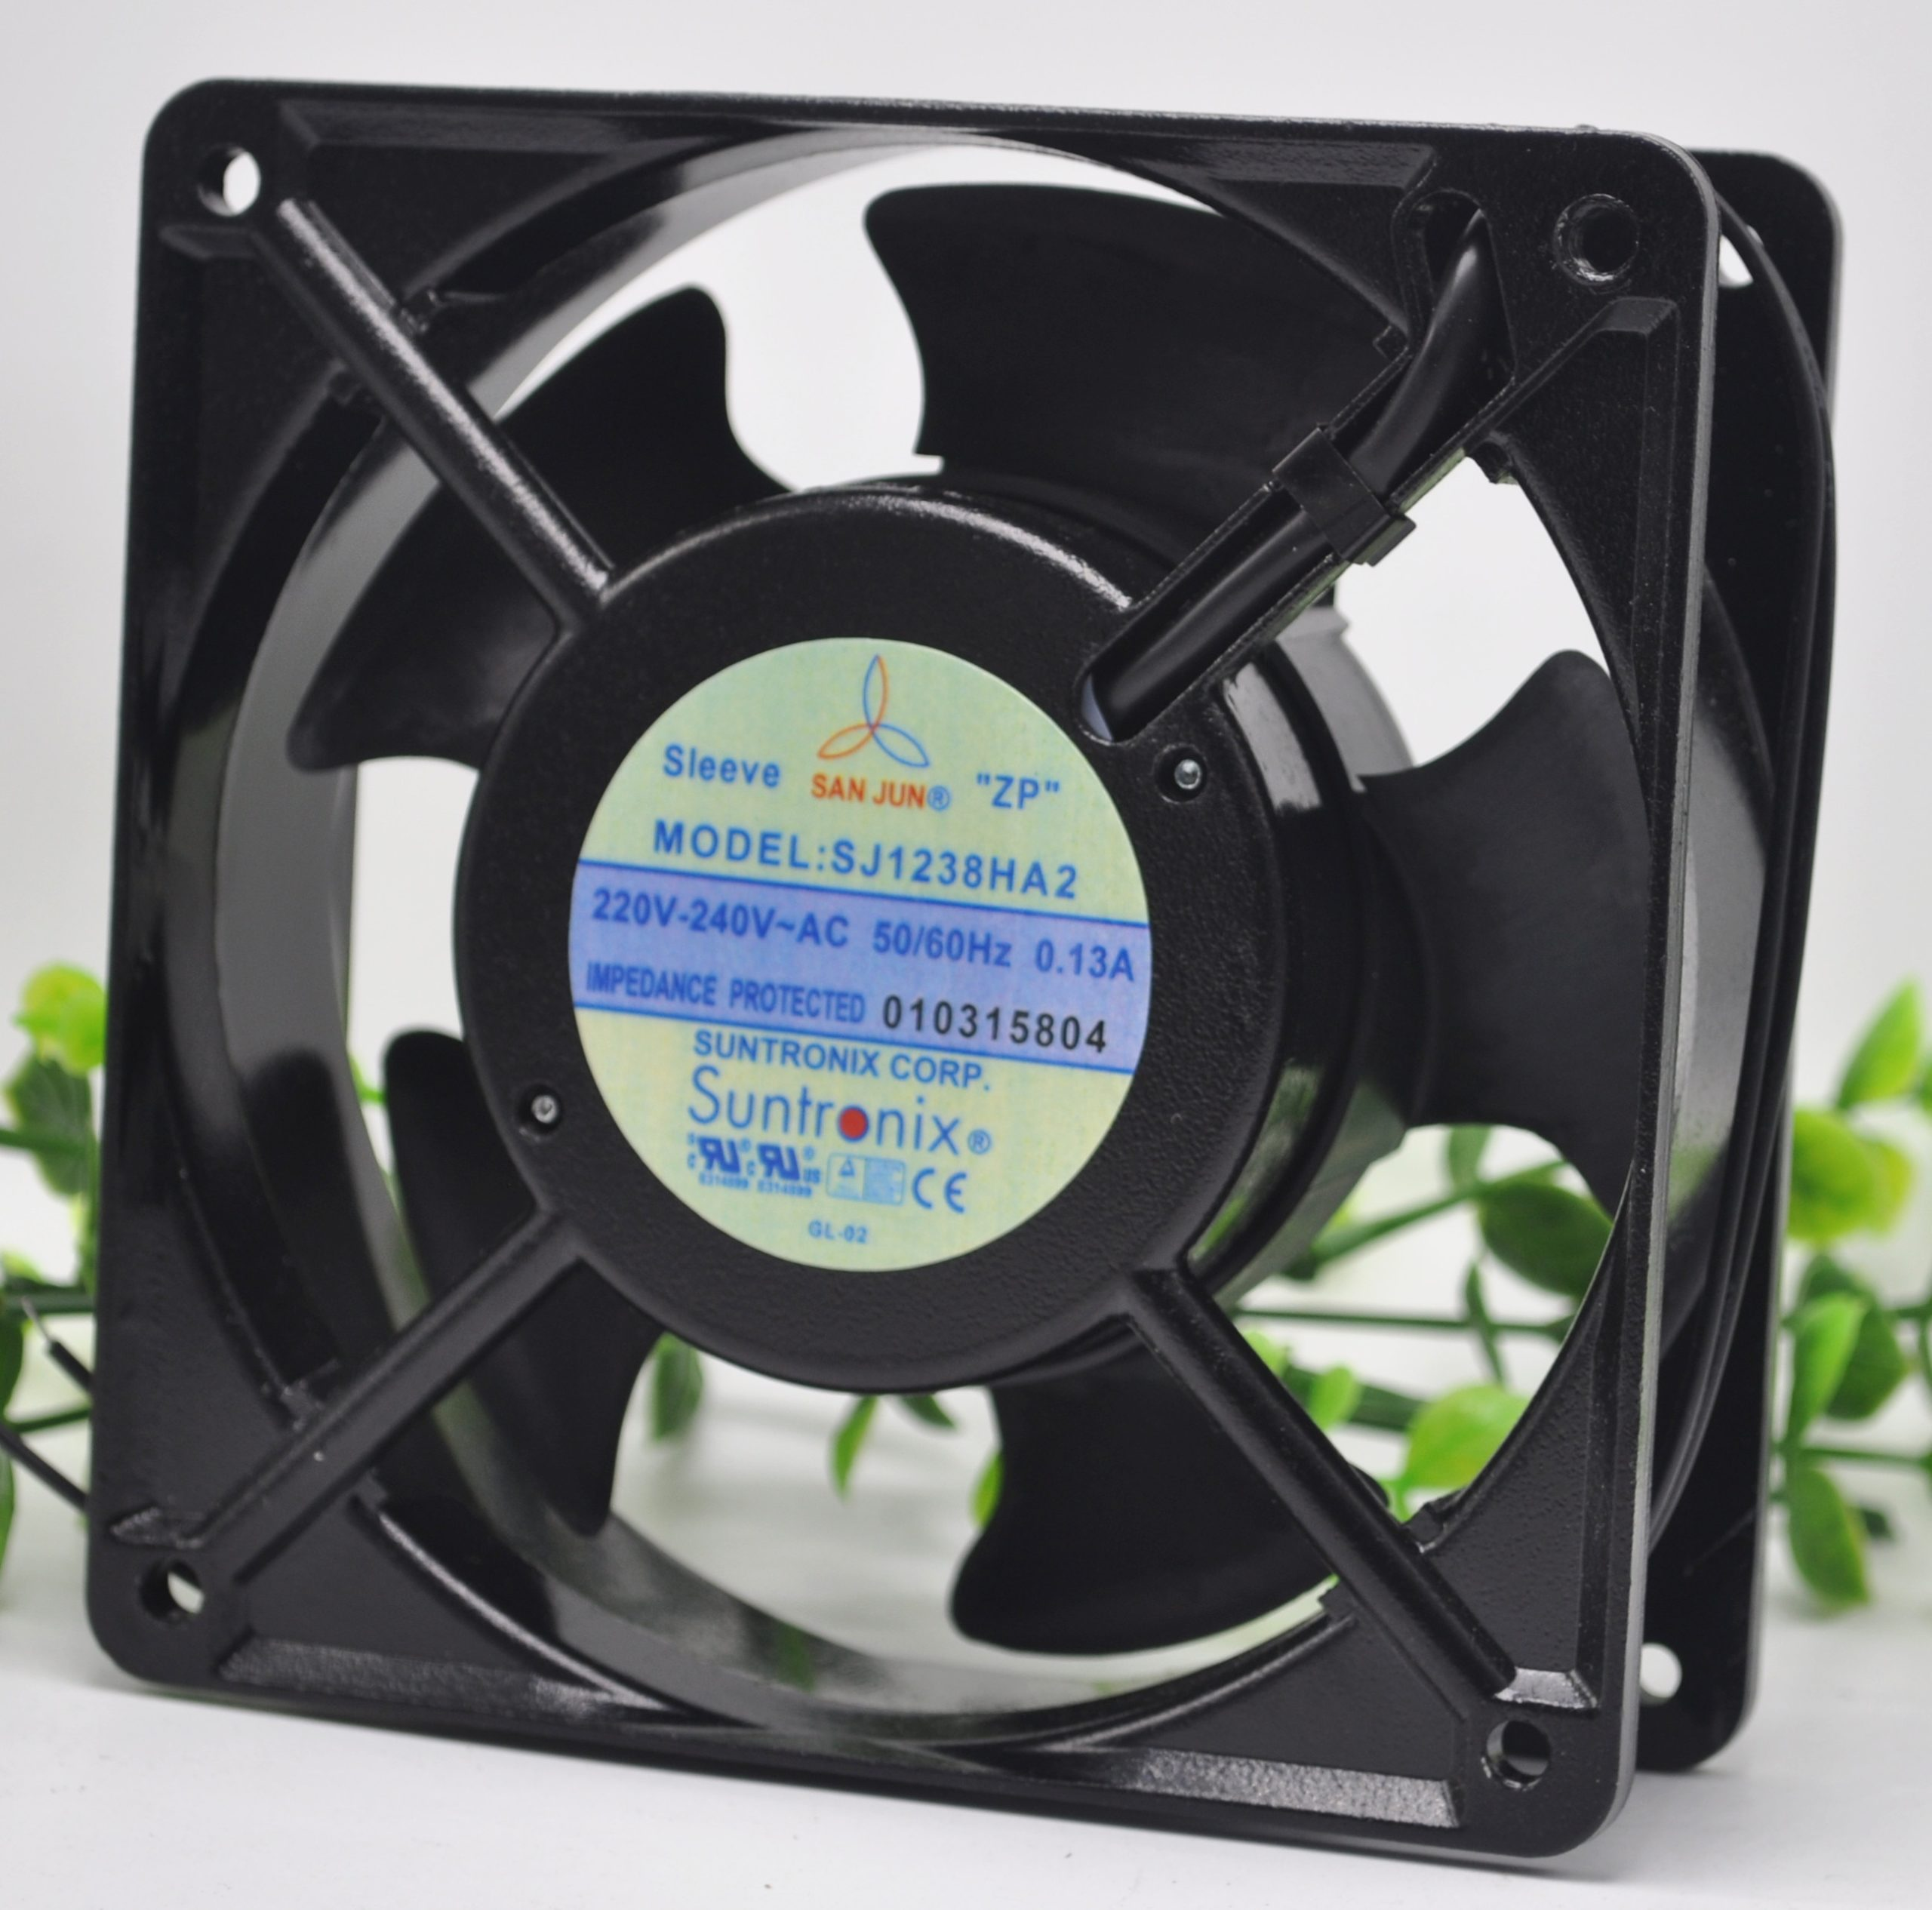 SJ1238HA2 original Taiwan three giant 12038AC220VHA1 110V axial flow cooling fan 380V HA3